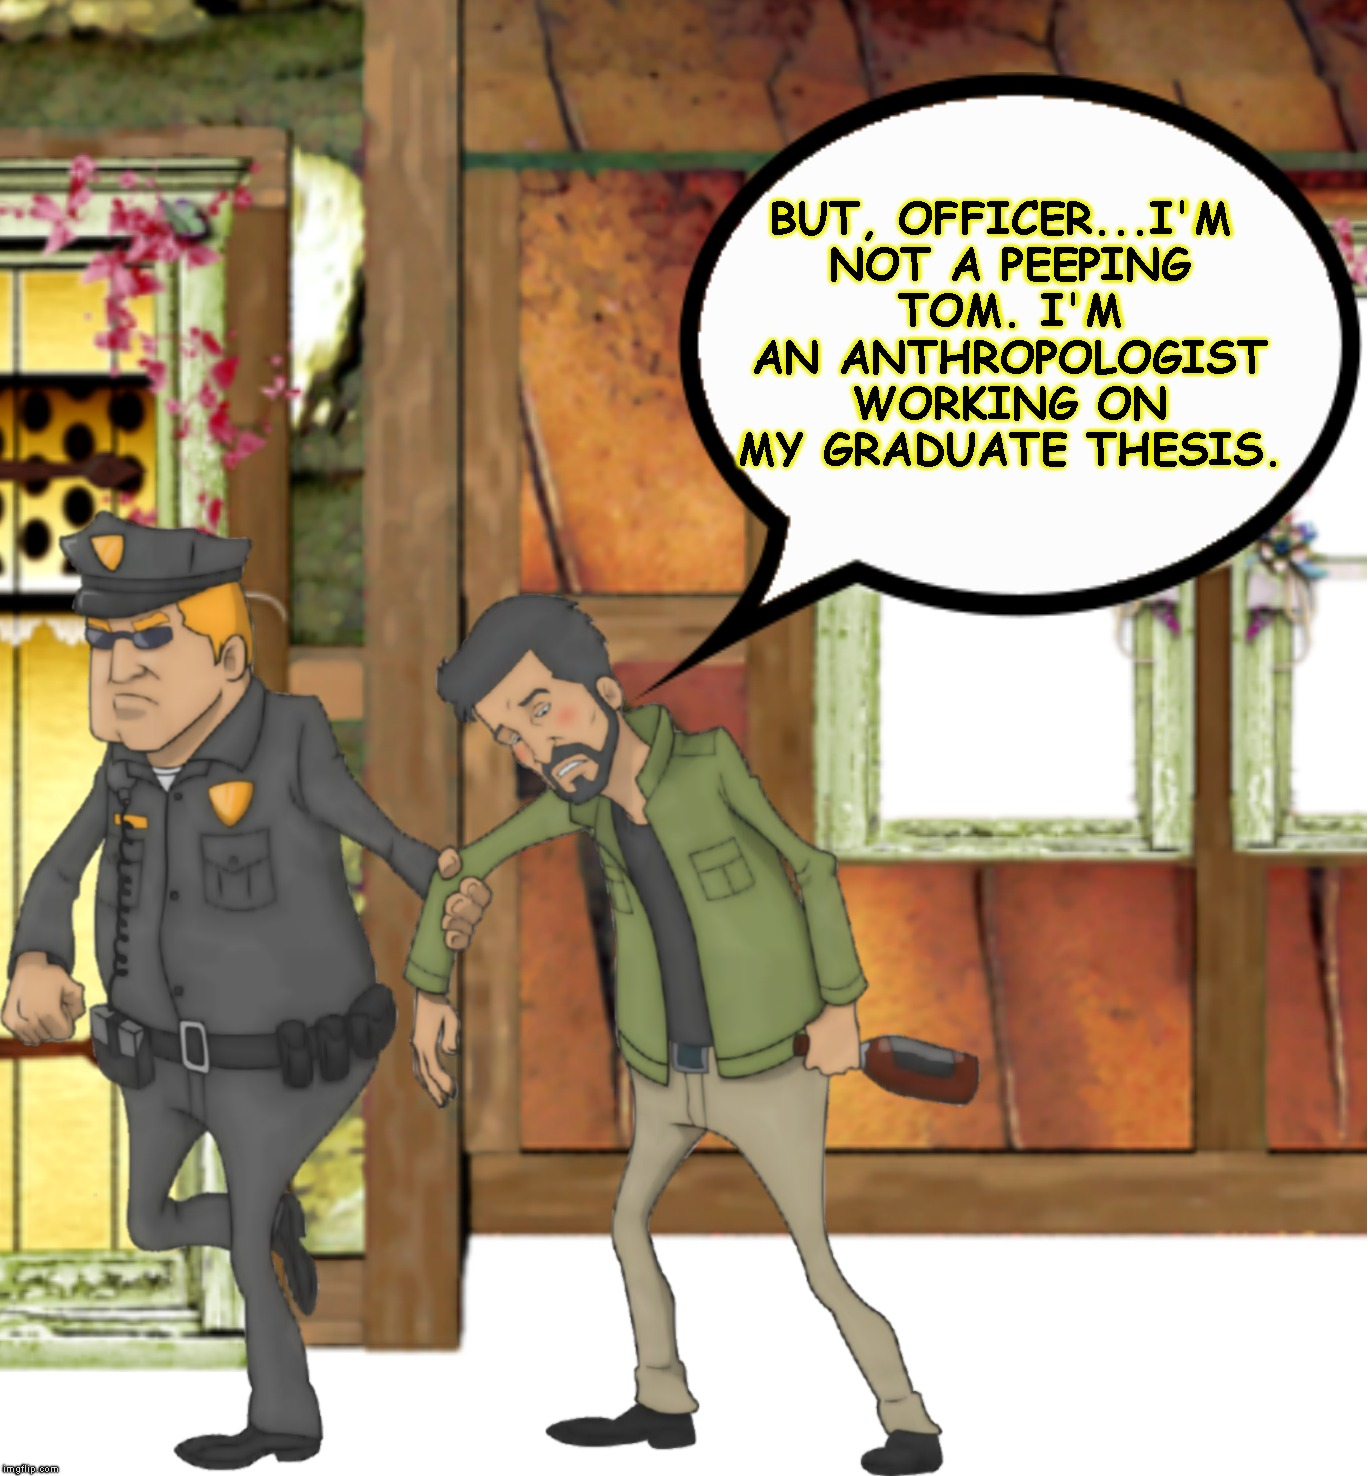 BUT, OFFICER...I'M NOT A PEEPING TOM. I'M AN ANTHROPOLOGIST WORKING ON MY GRADUATE THESIS. | made w/ Imgflip meme maker